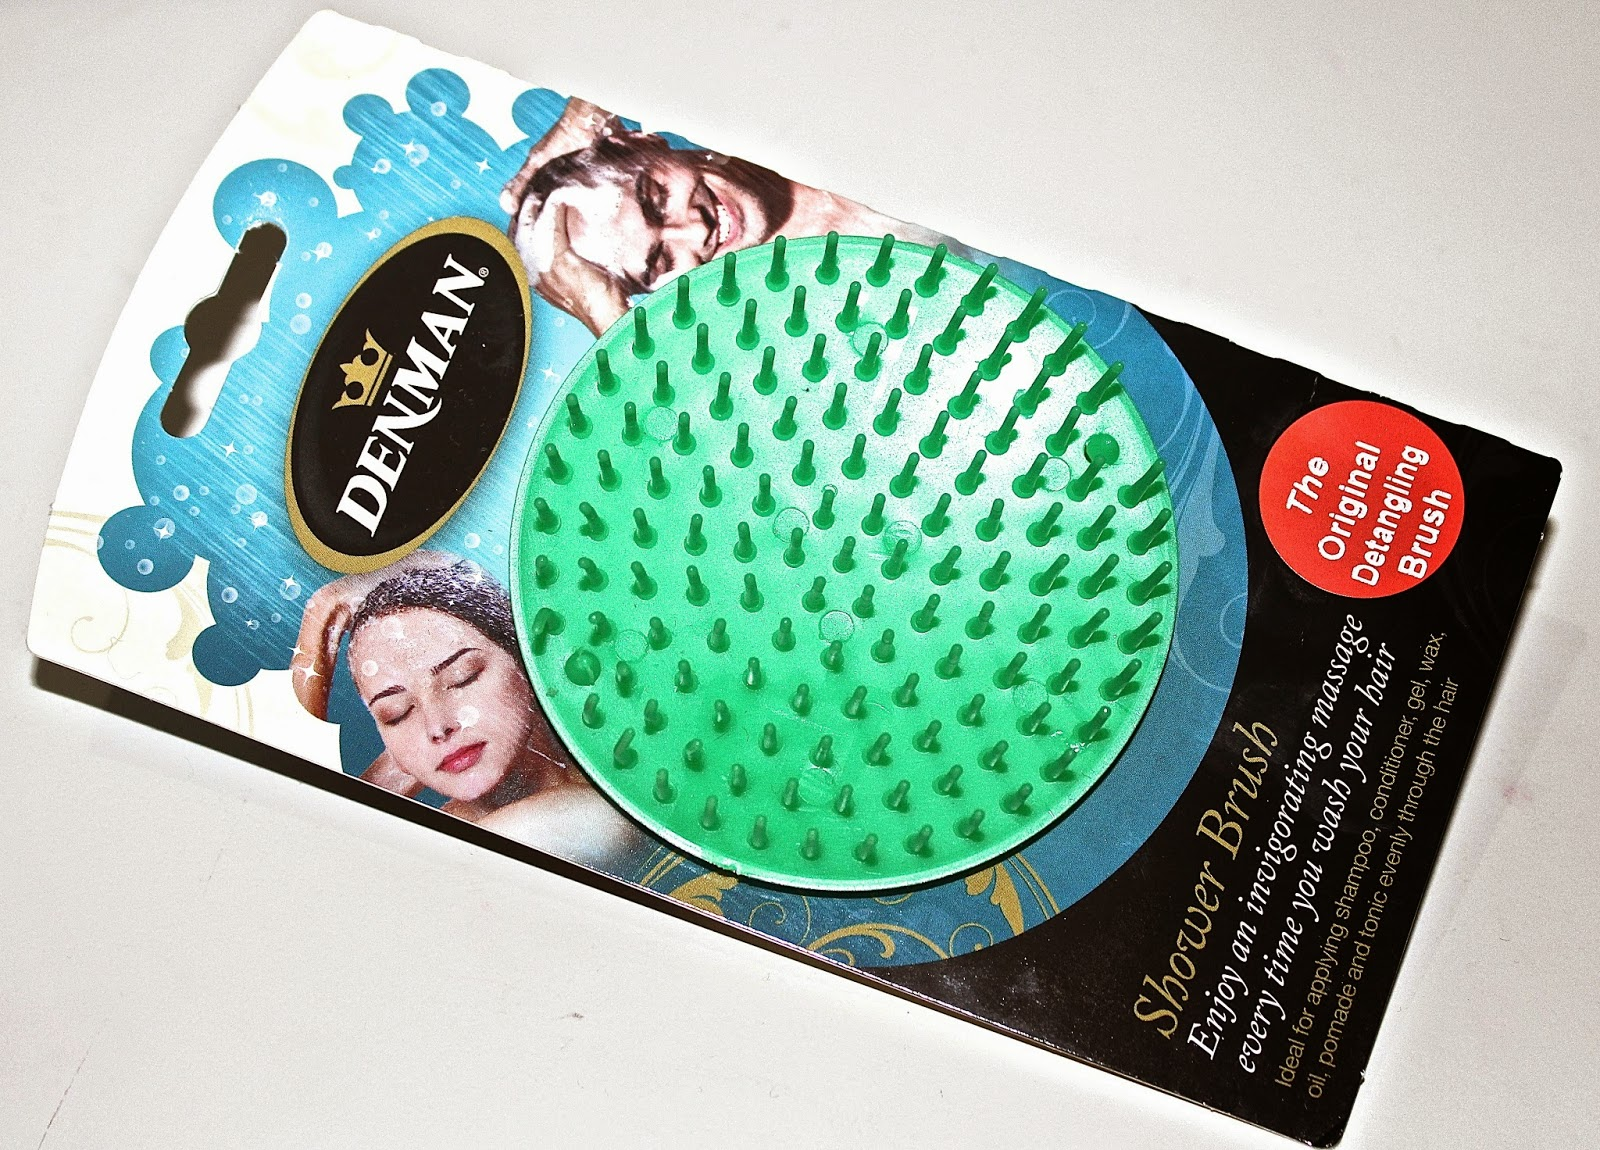 picture of Denman Detangling hair brush and packaging